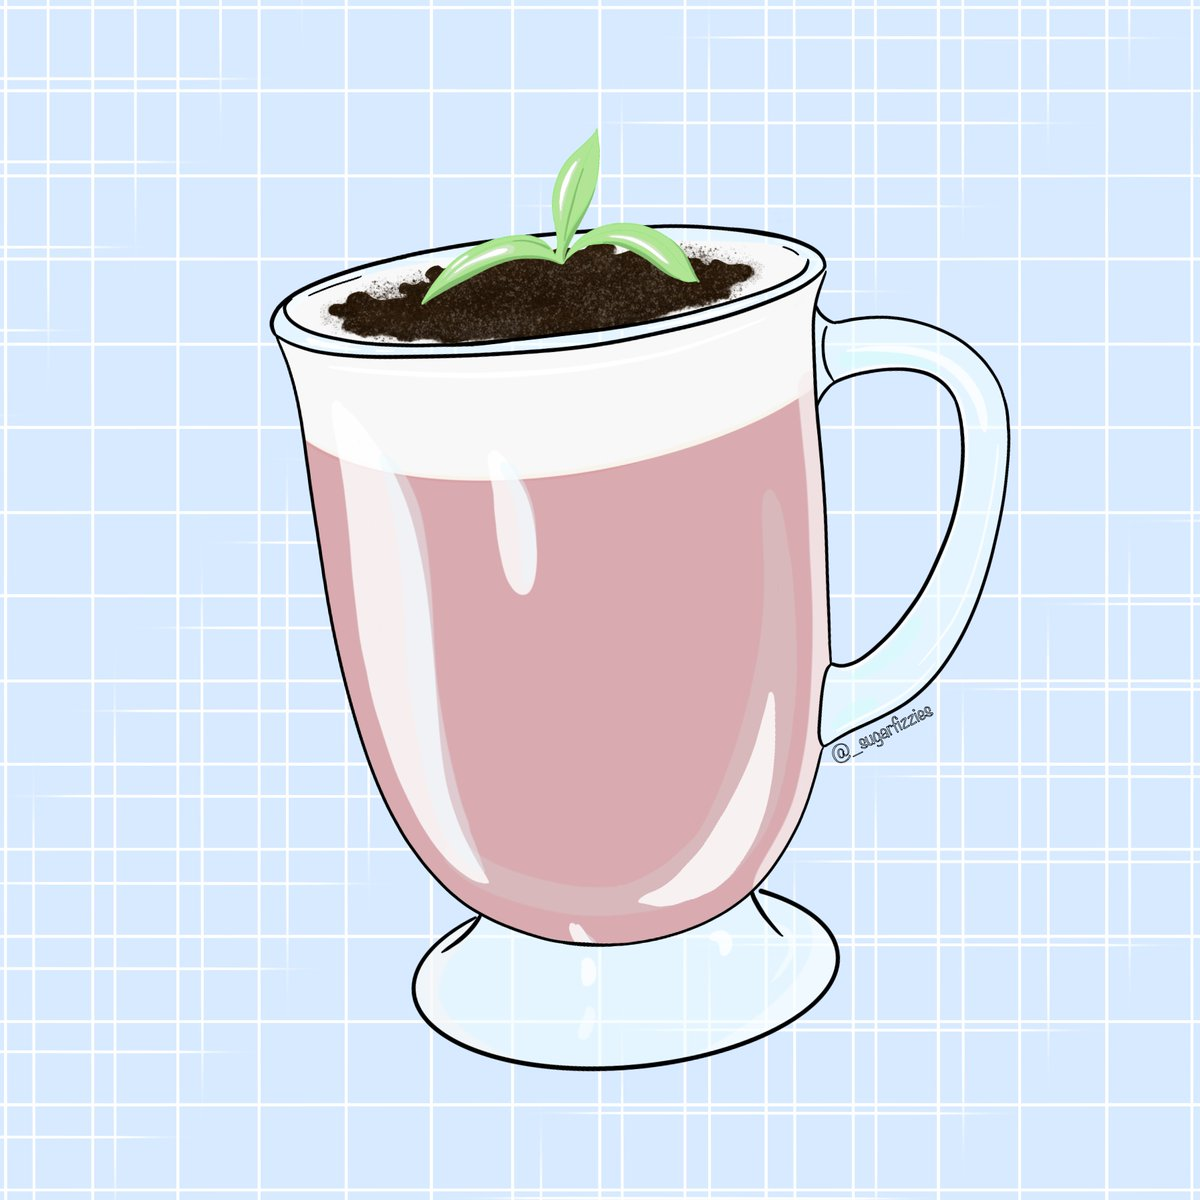 2nd  @princeteahouse-inspired post: potted plant rose milk tea 🌹❣️ . {Pls bear with me as I explore different art styles 🙇🏻♀️} . . . #foodart #dessert #cute #cuteart #art #artwork #digital #digitalart #digitalartwork #procreate